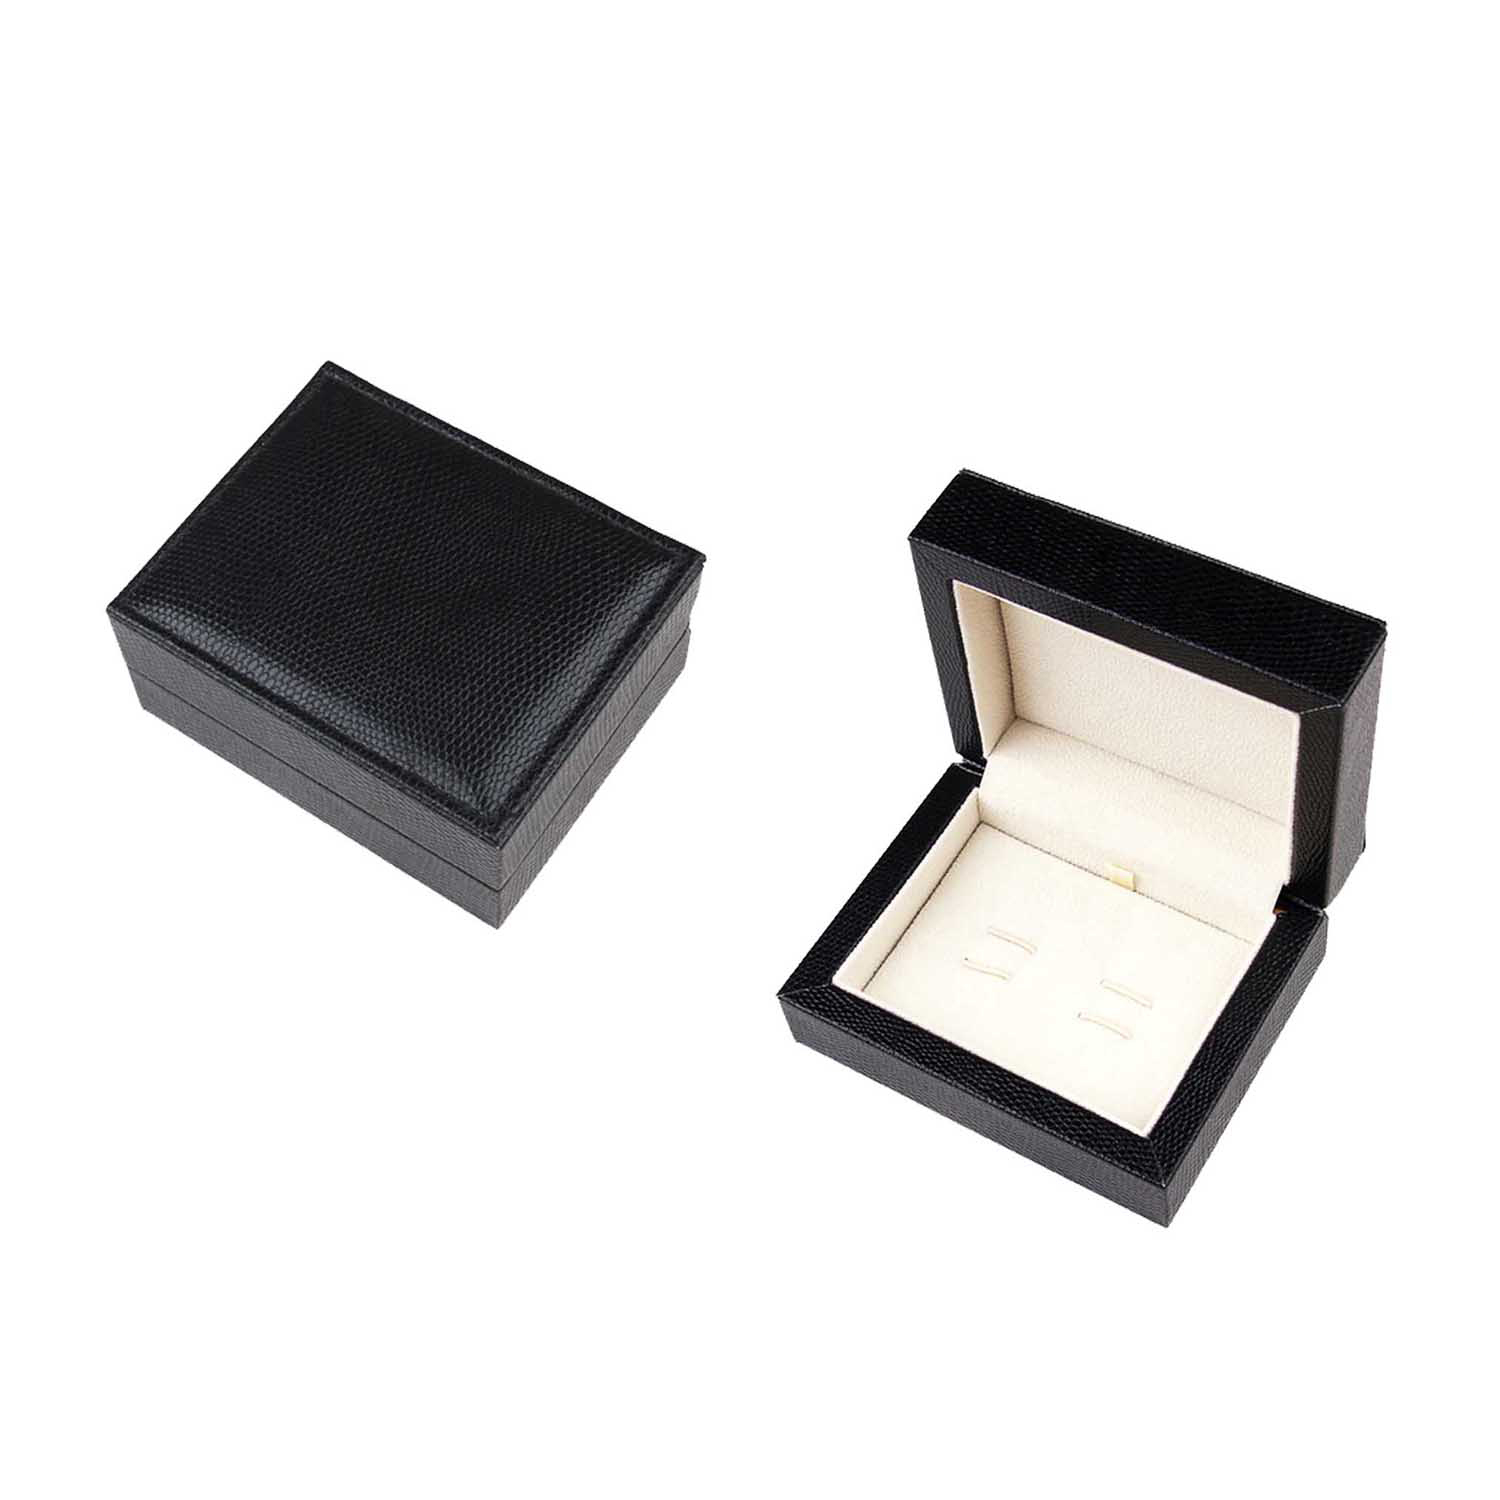 Hot sale delicate leather cufflink box with zipper